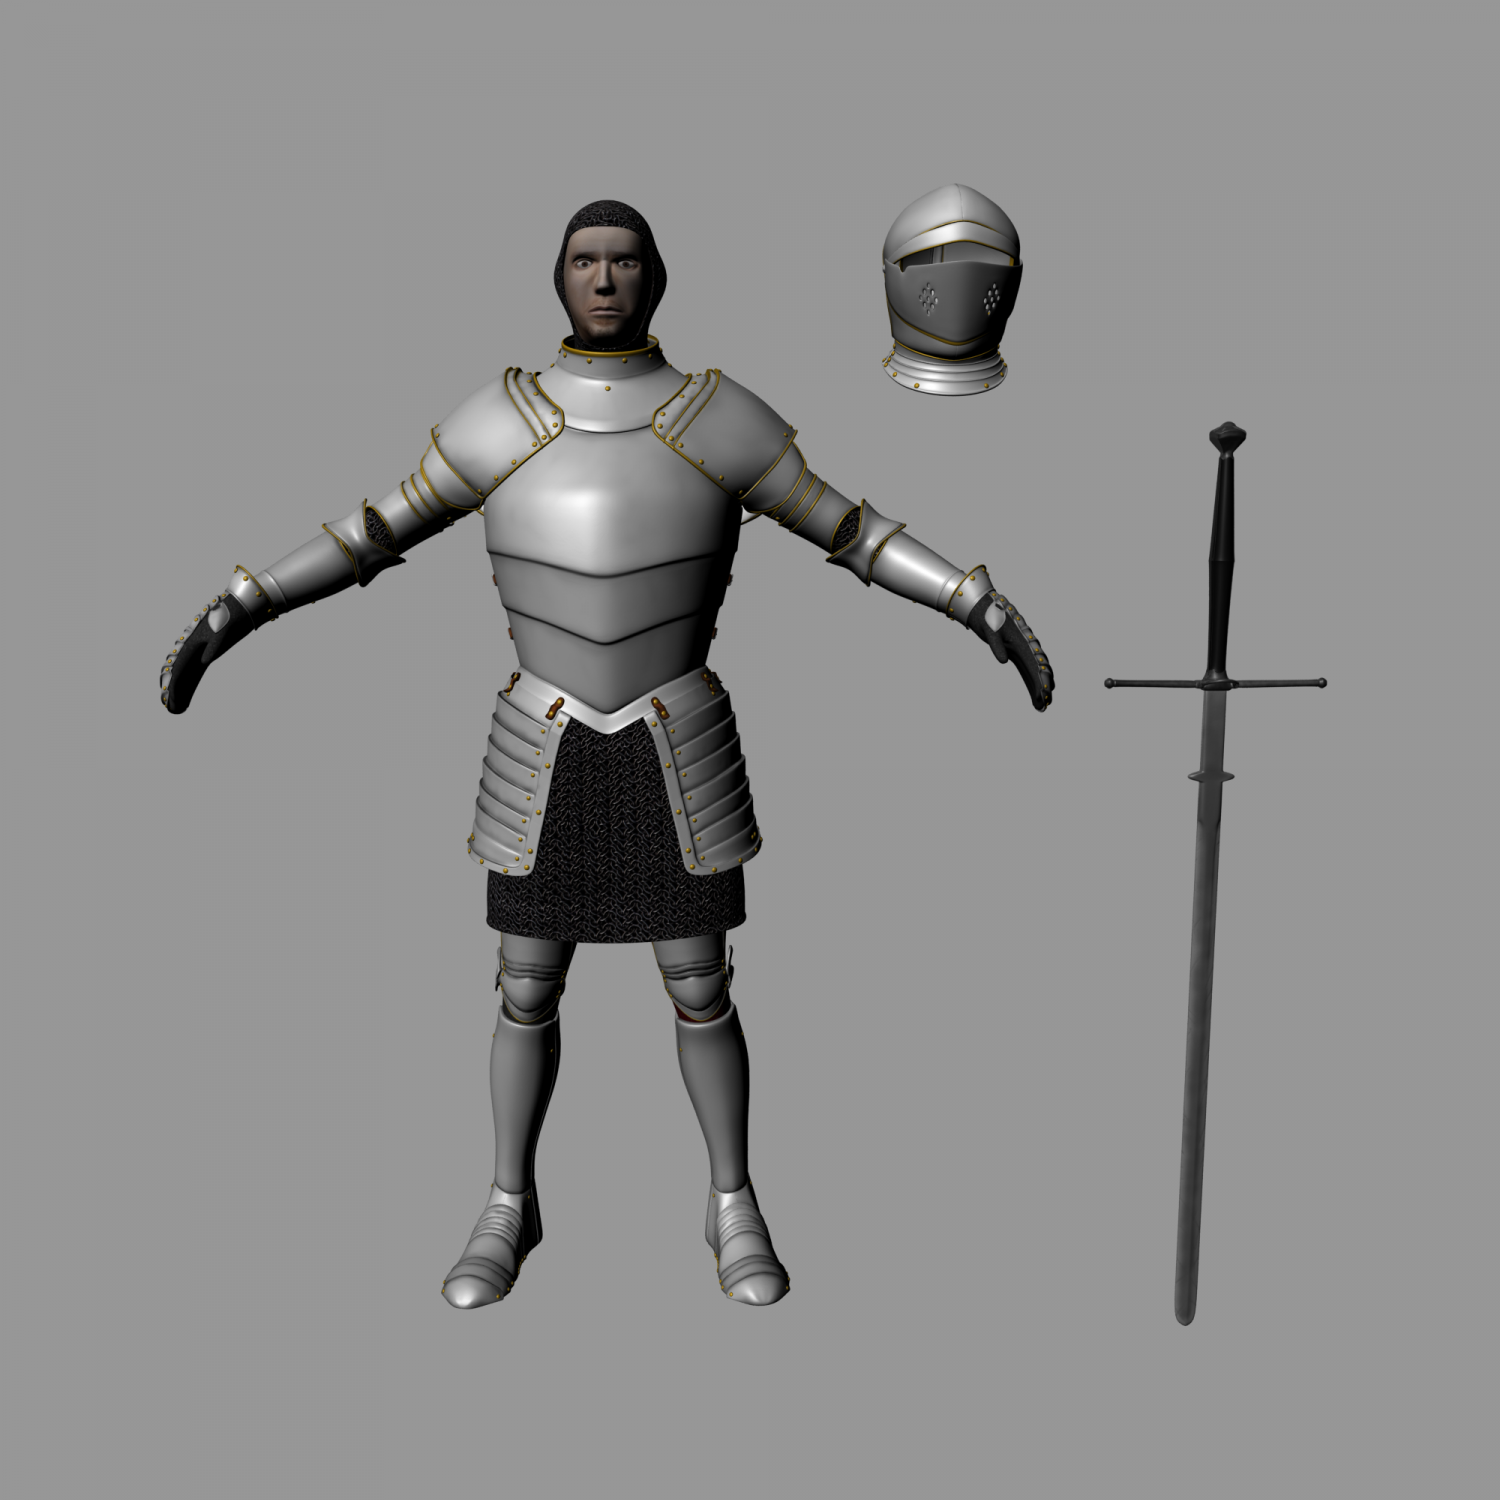 Medieval Knight-Armor with Two-handed Sword 3D Model in Man 3DExport